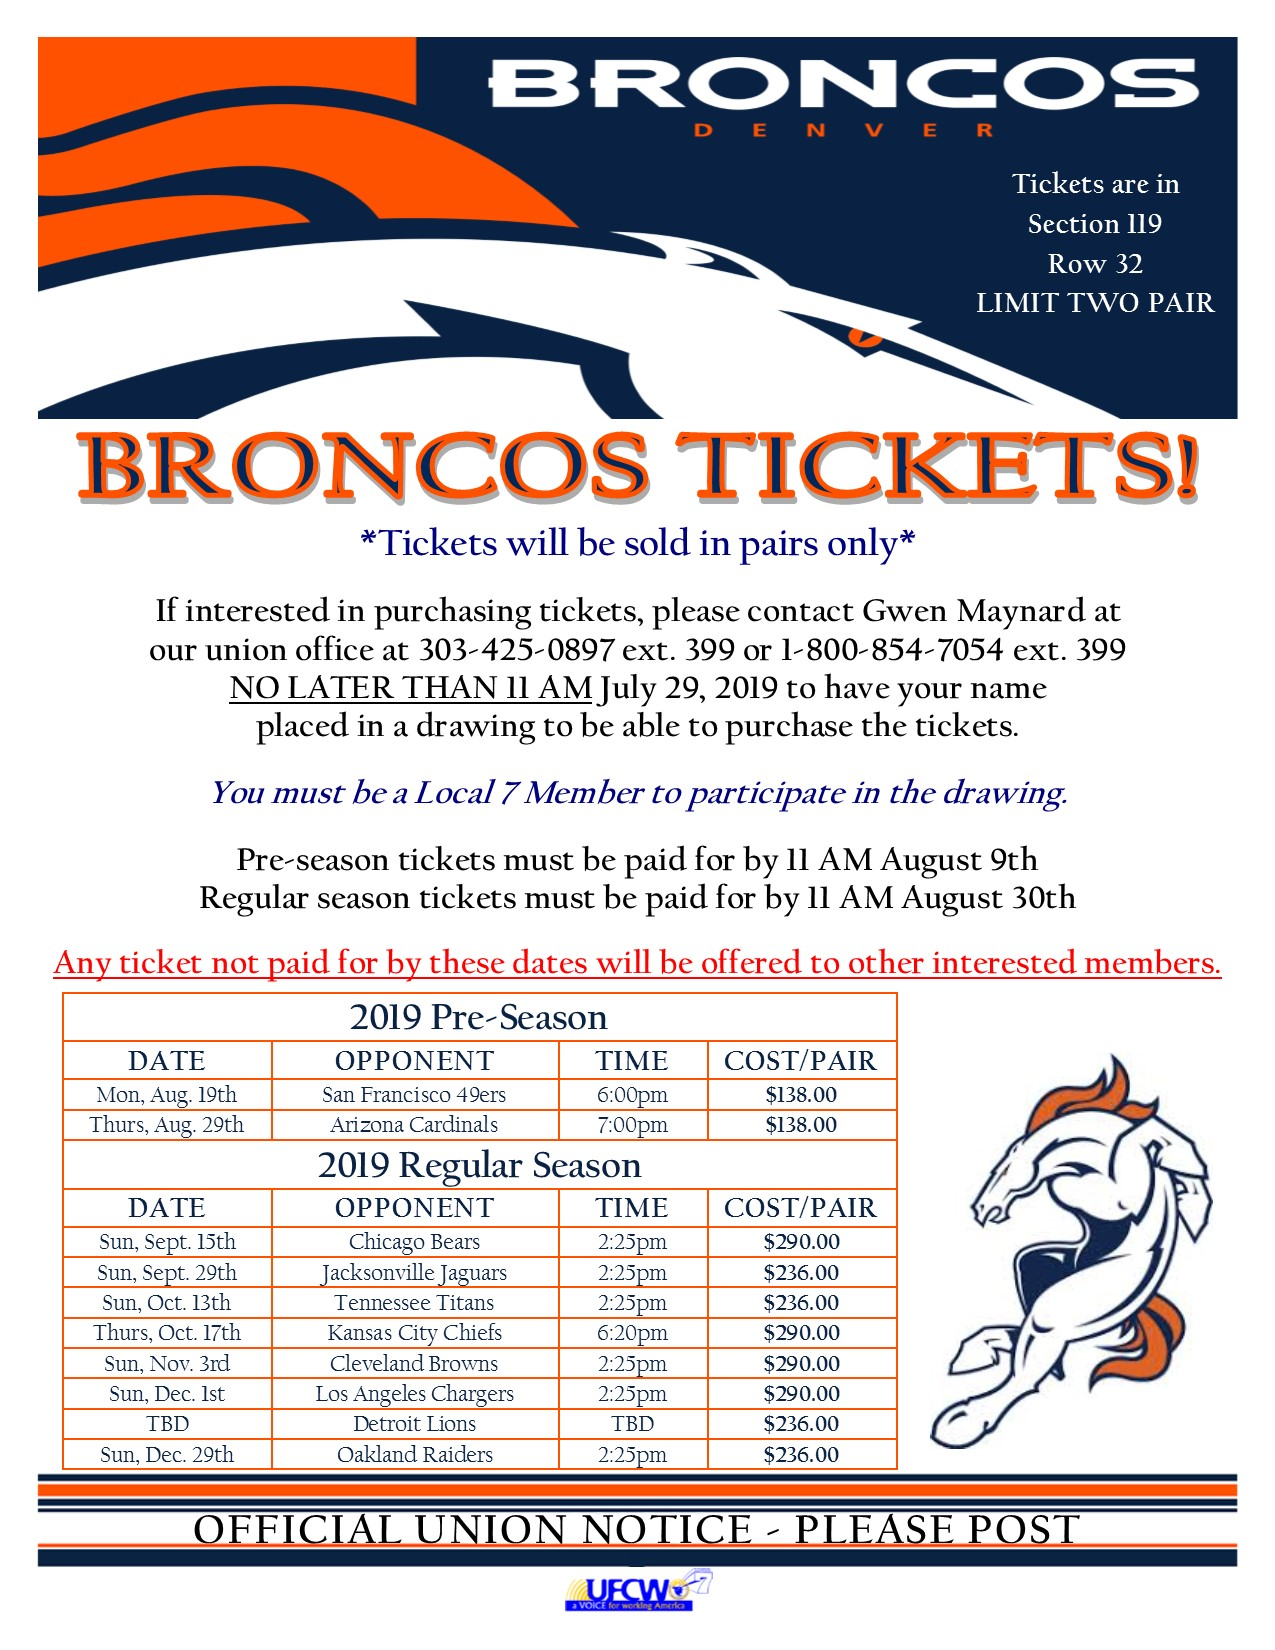 Put Your Name In A Drawing To Purchase Broncos Tickets